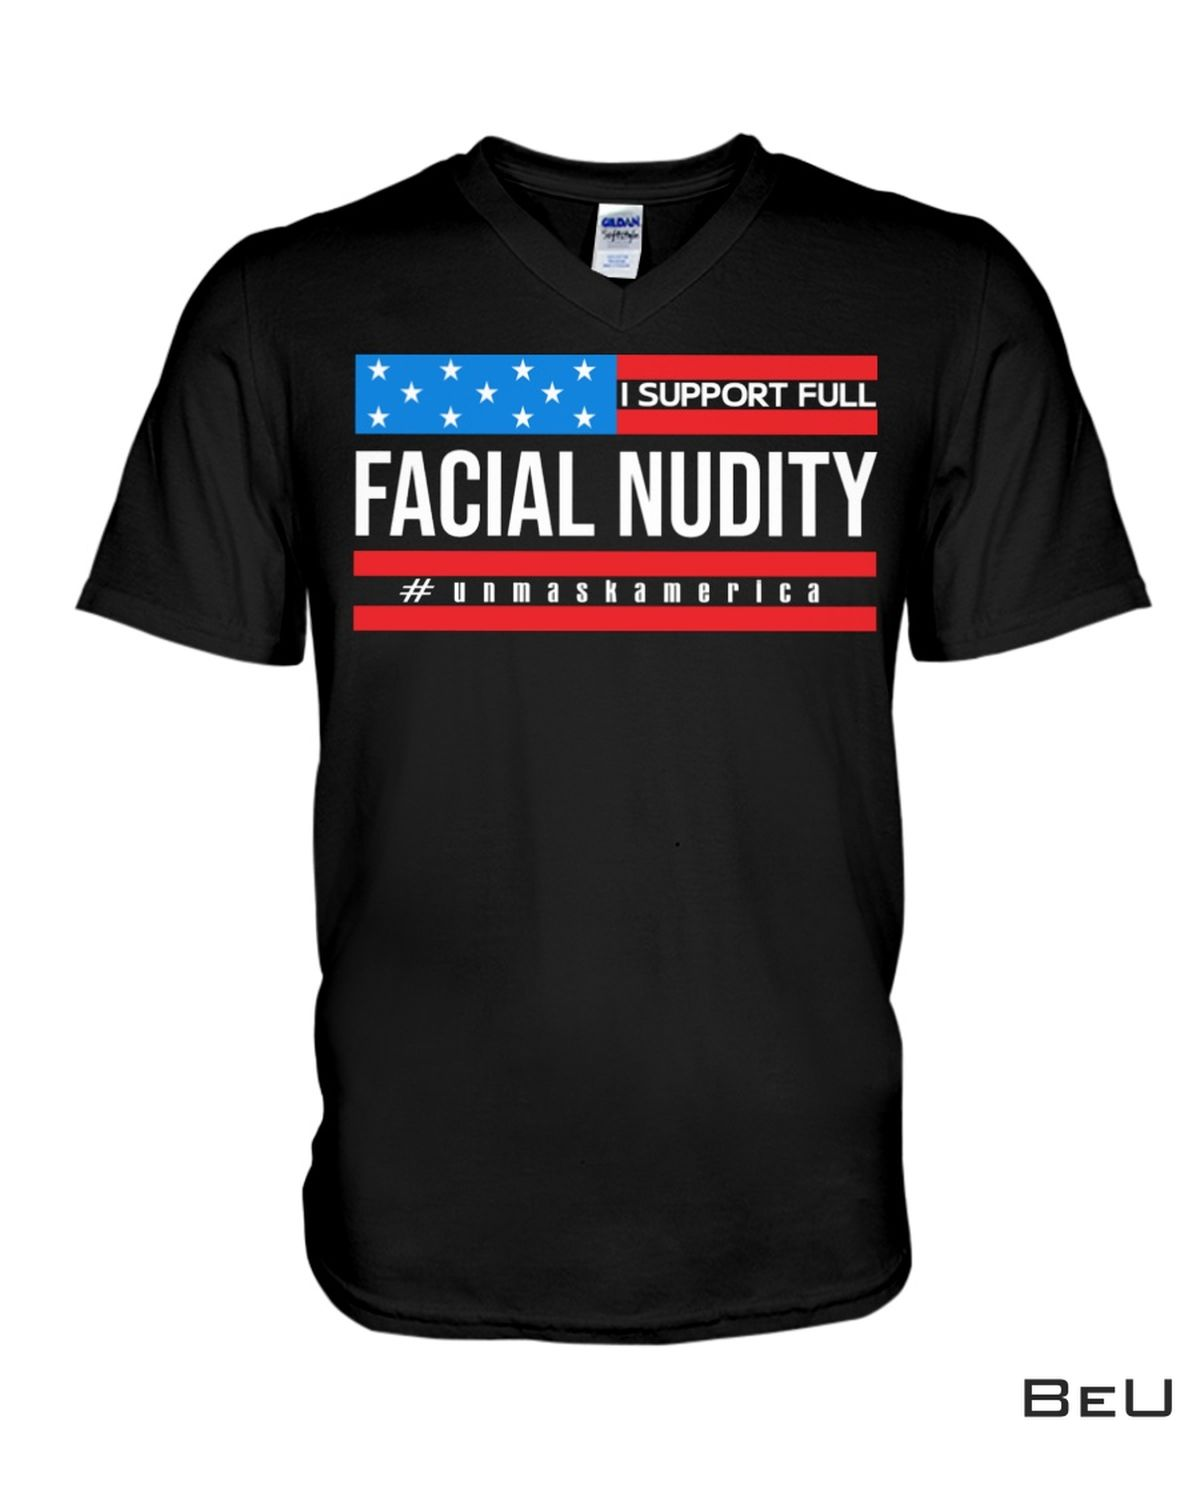 Real I Support Full Facial Nudity Shirt